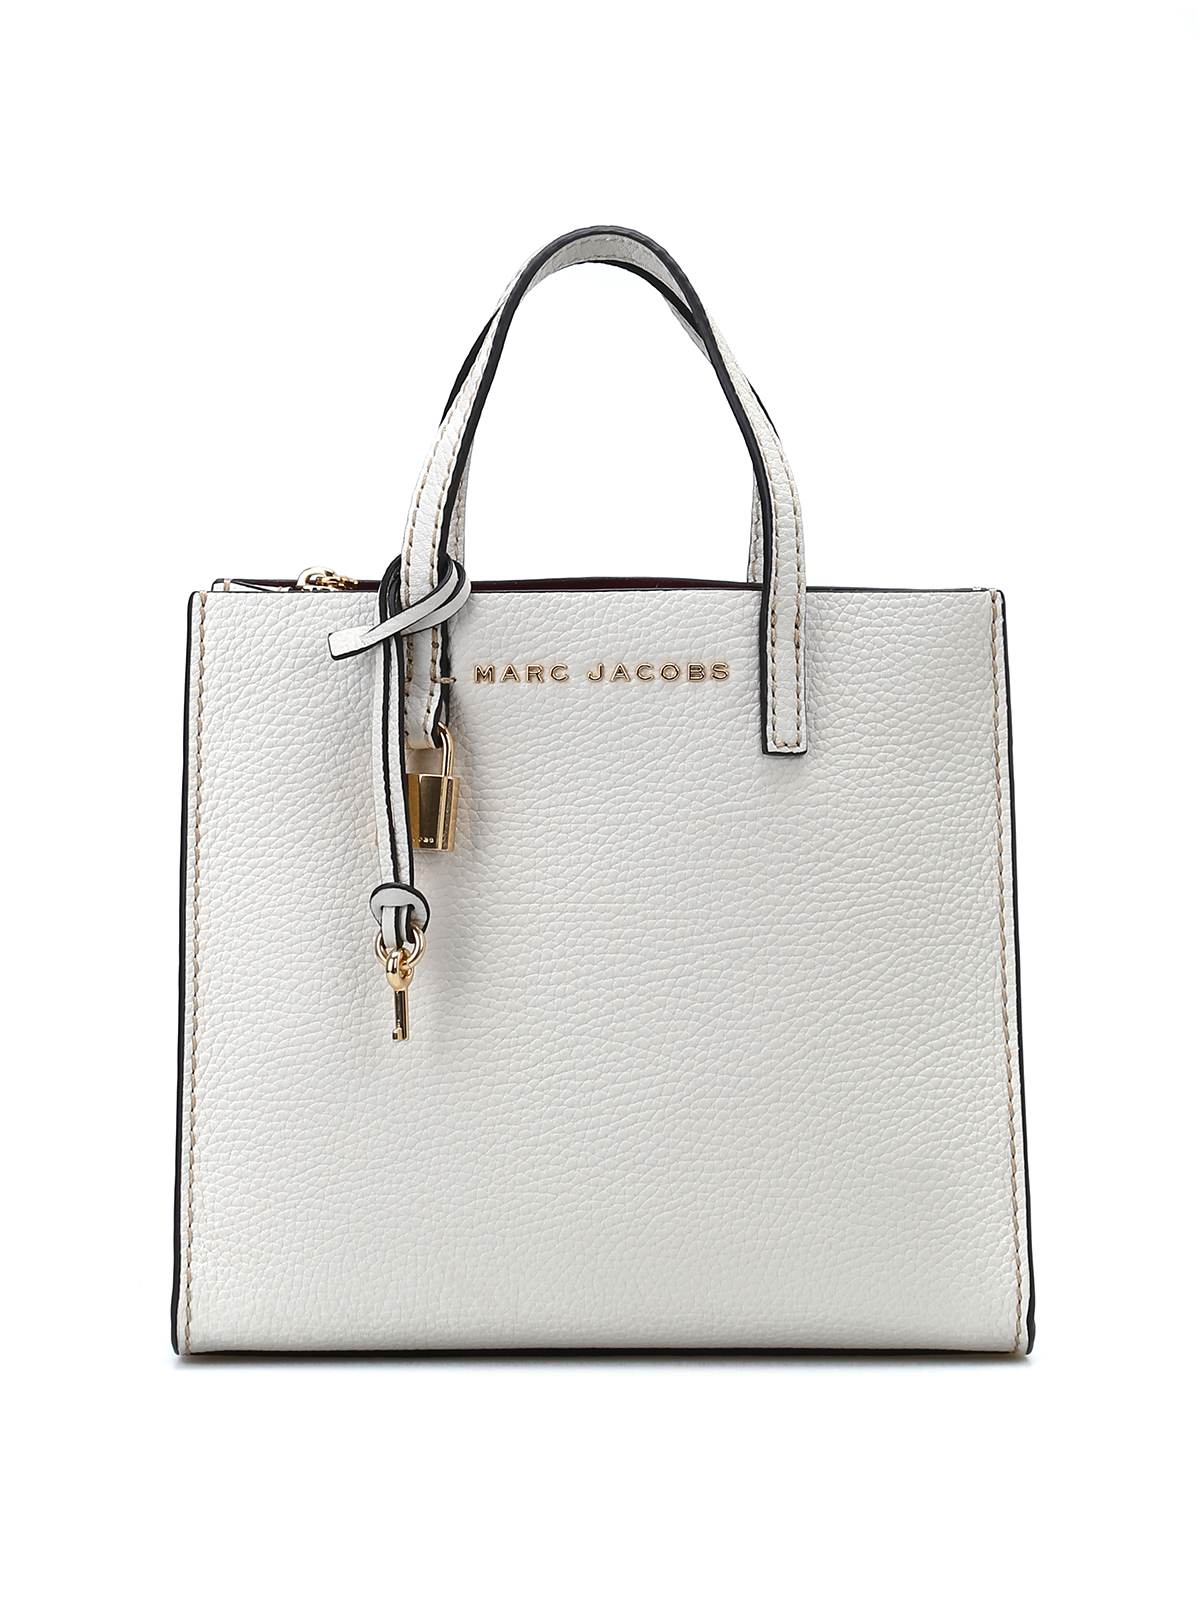 8c0ca9bcc1f9a Marc Jacobs - Mini Grind white pebble leather bag - cross body bags ...